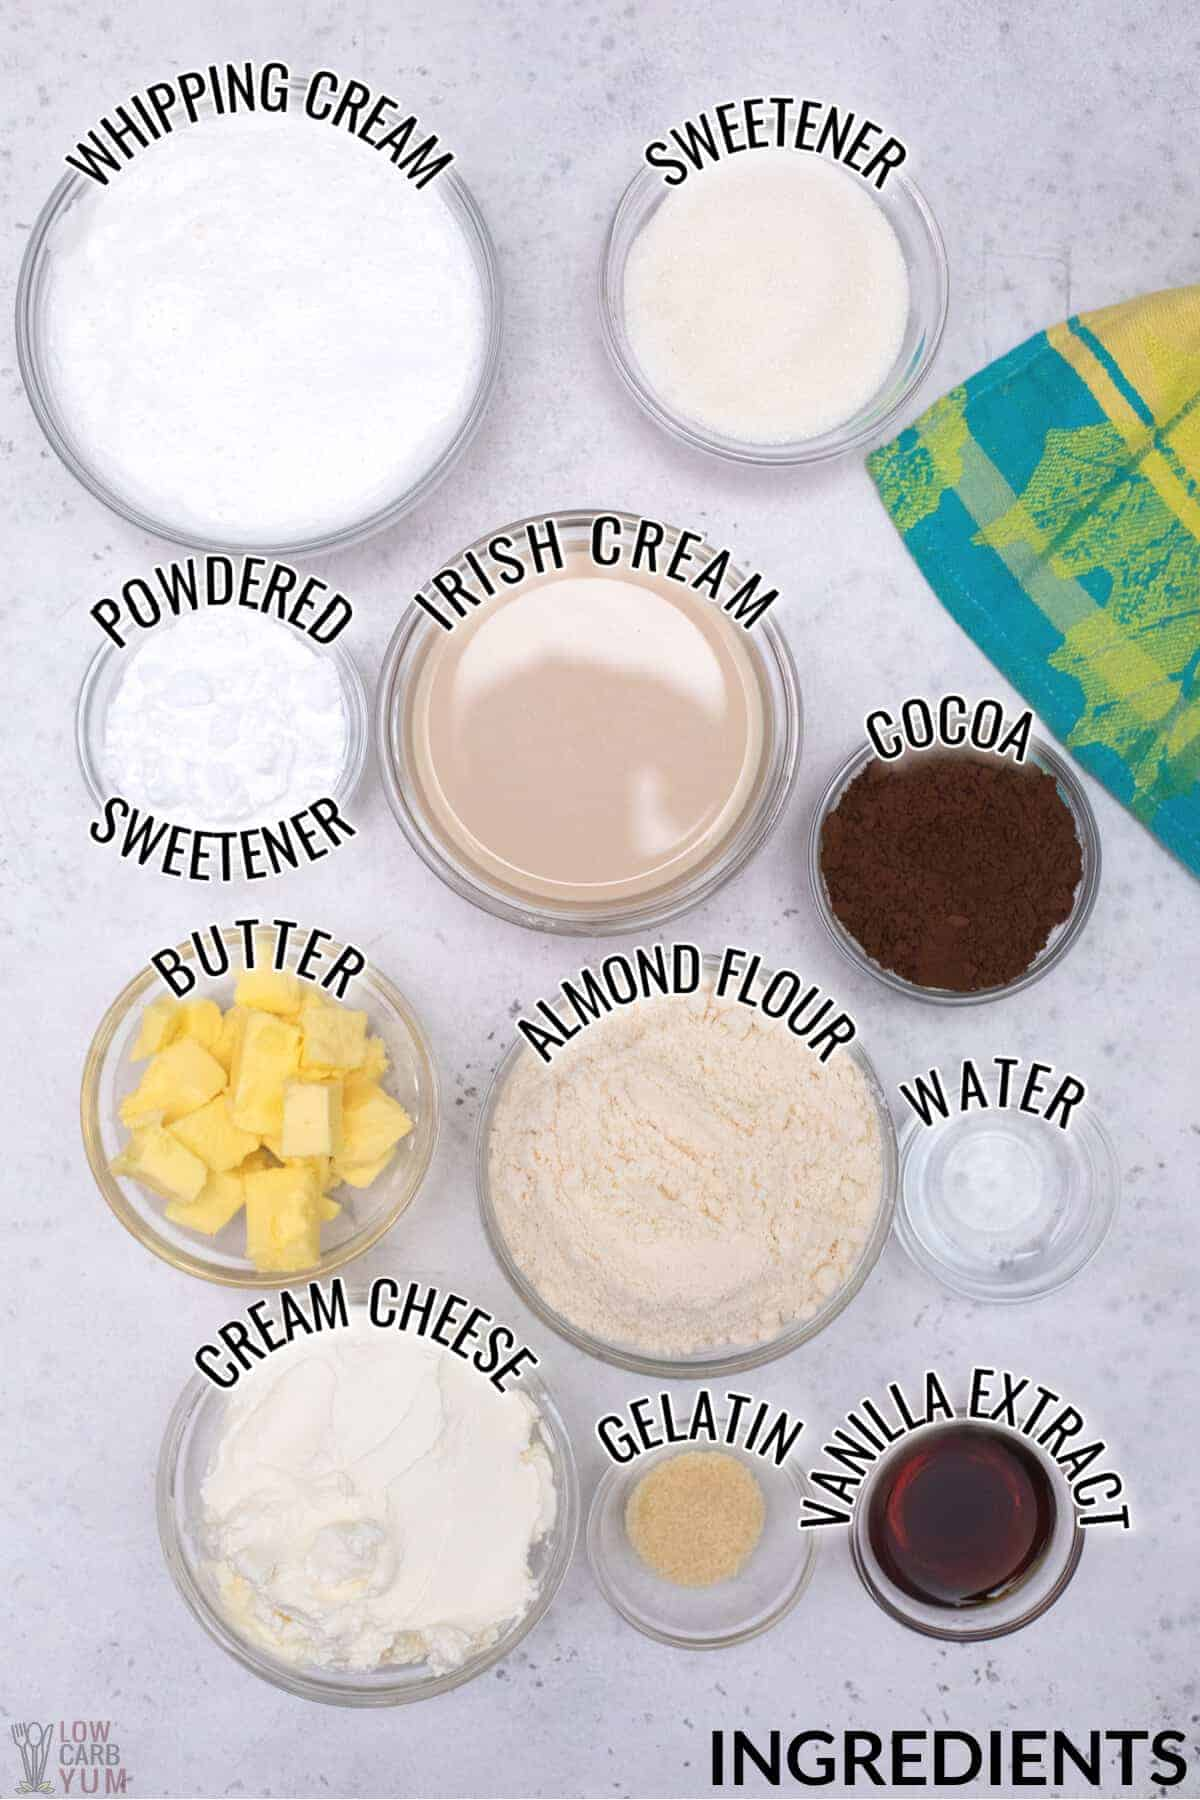 irish cream cheesecake ingredients